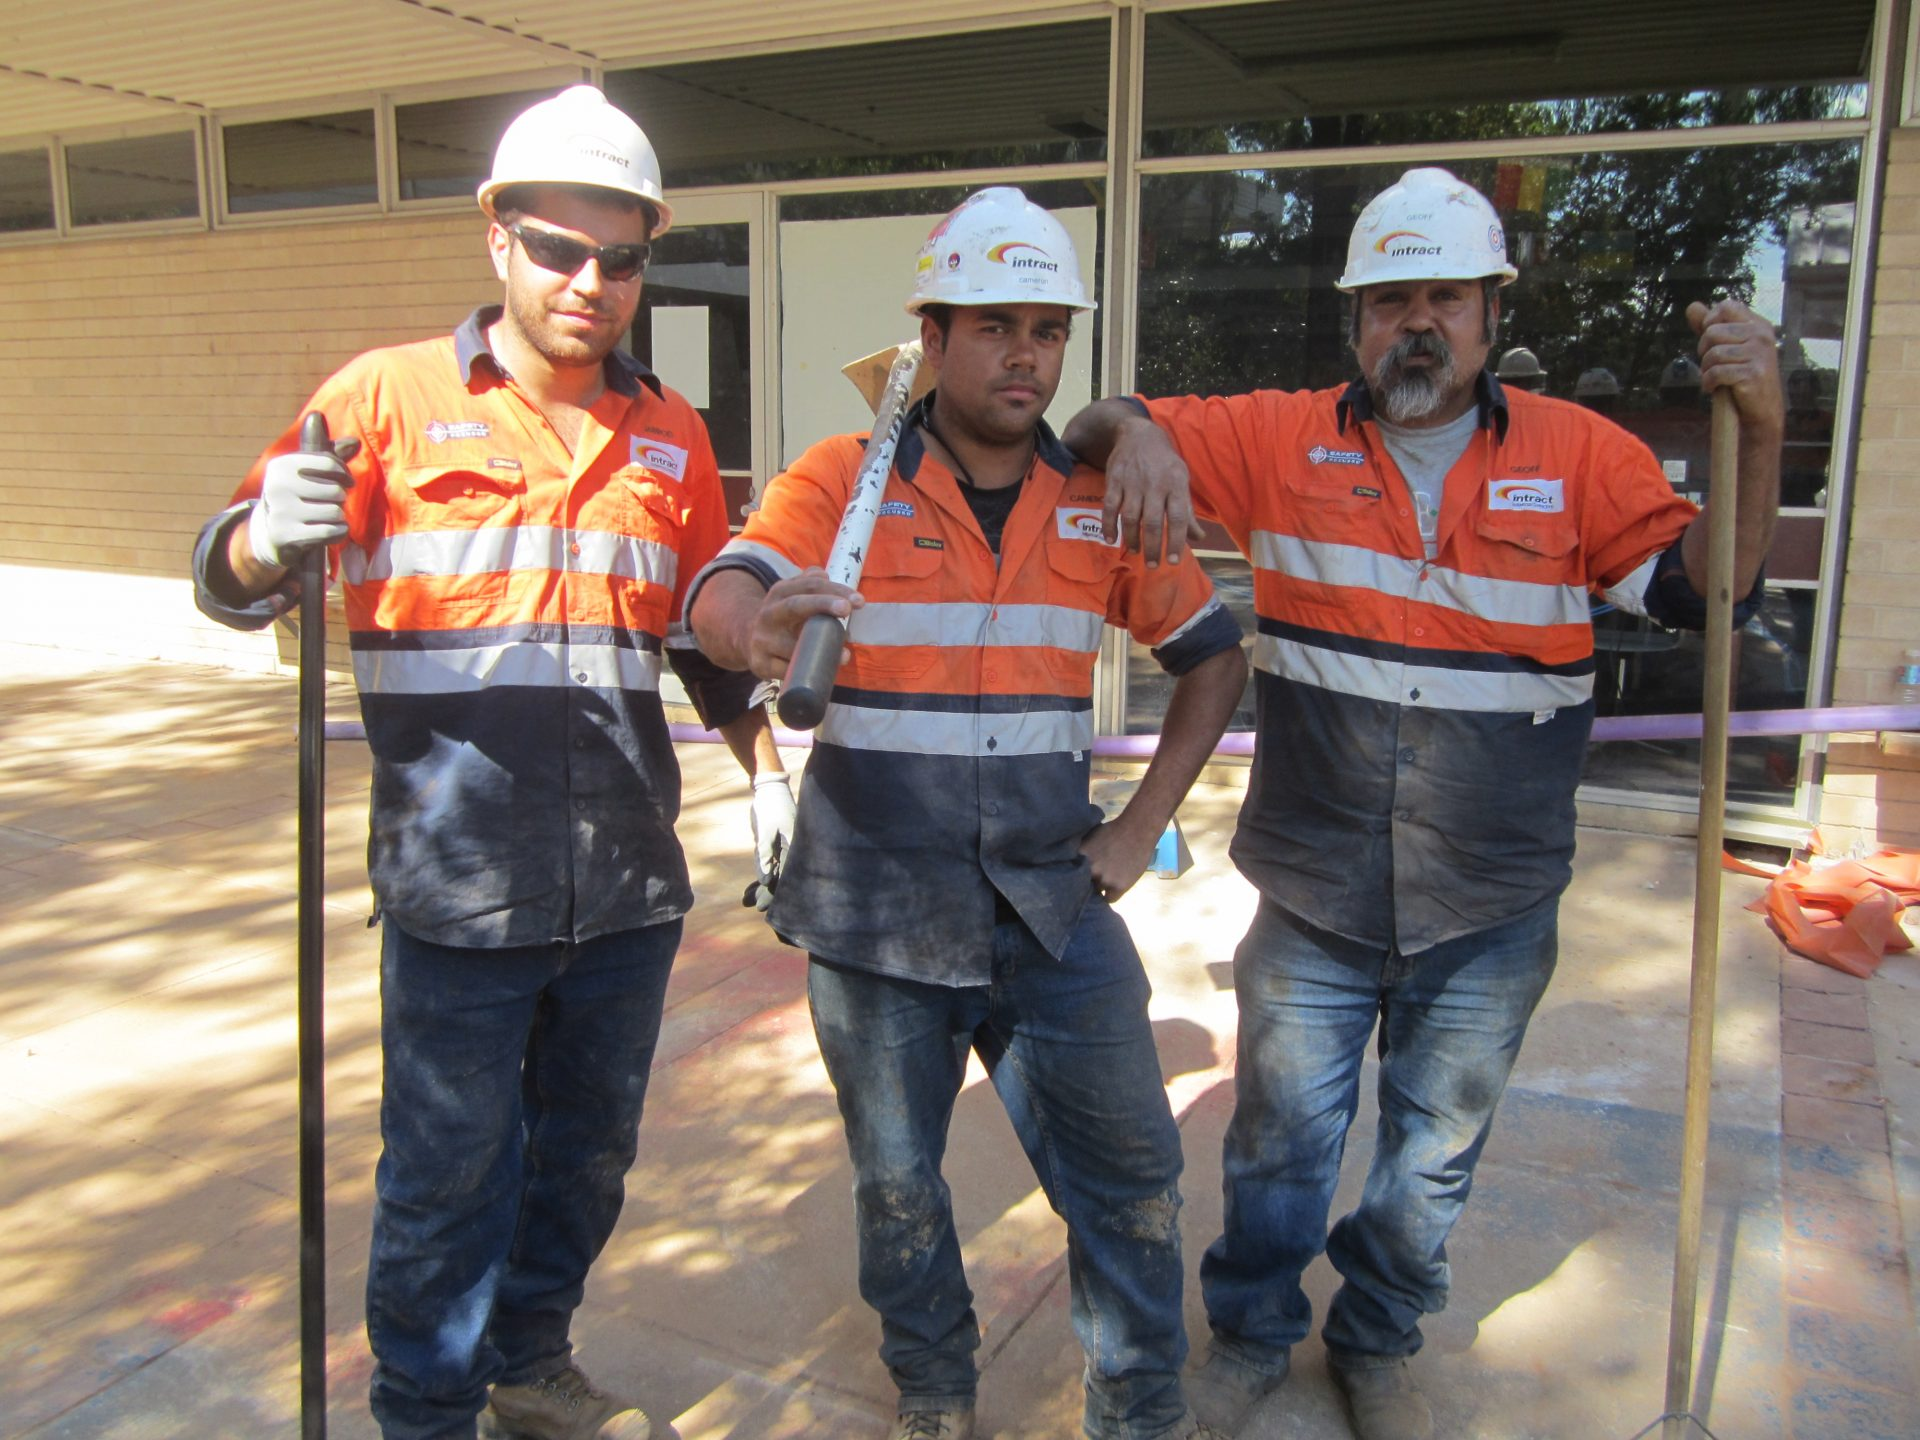 Three Intract contractors standing out the front of building at construction site